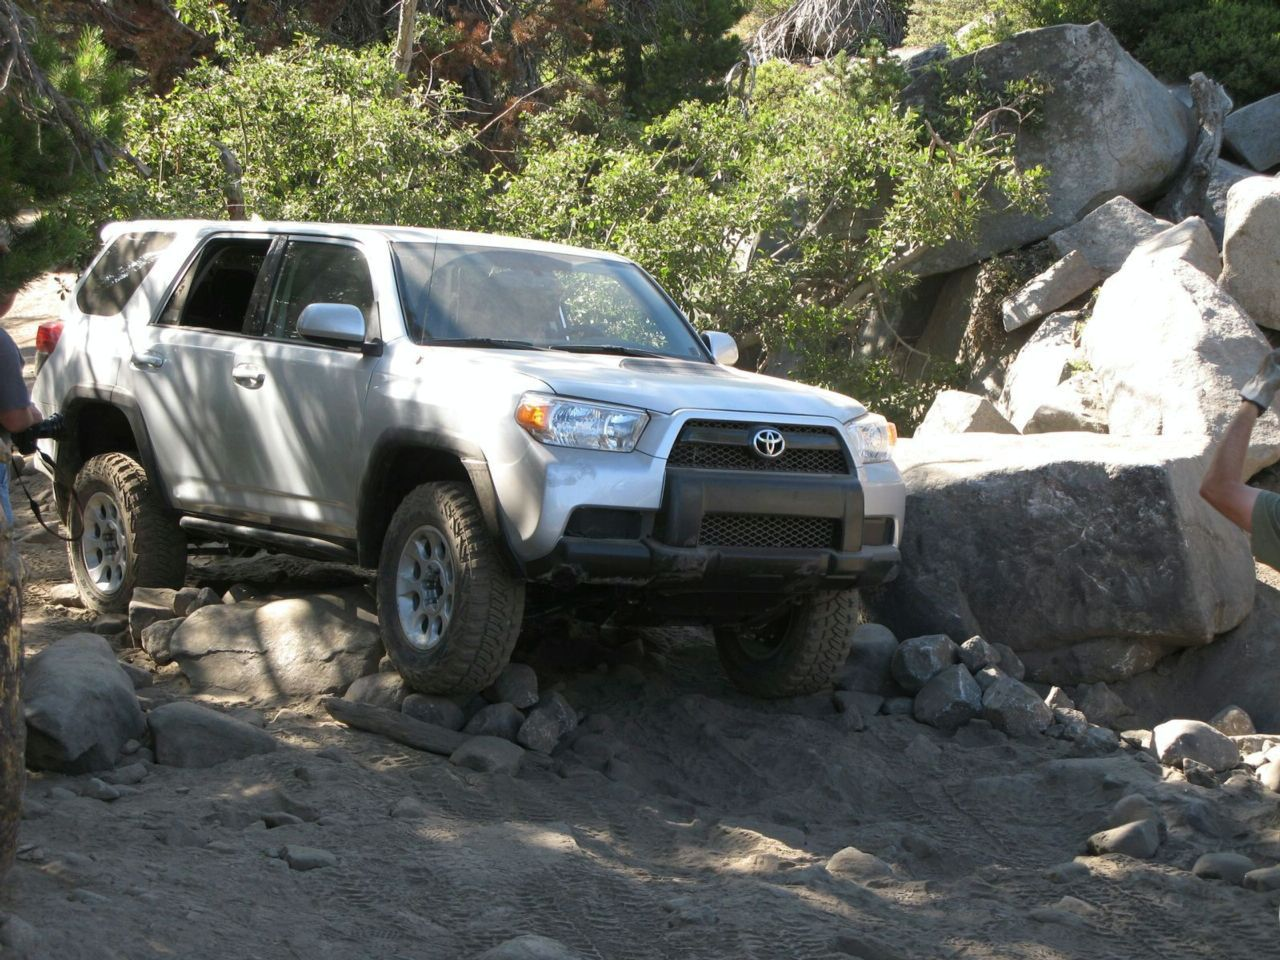 New 2010 Toyota 4Runner Officially Revealed (photos And Video) » Toyota  4Runner 2010 Img_12